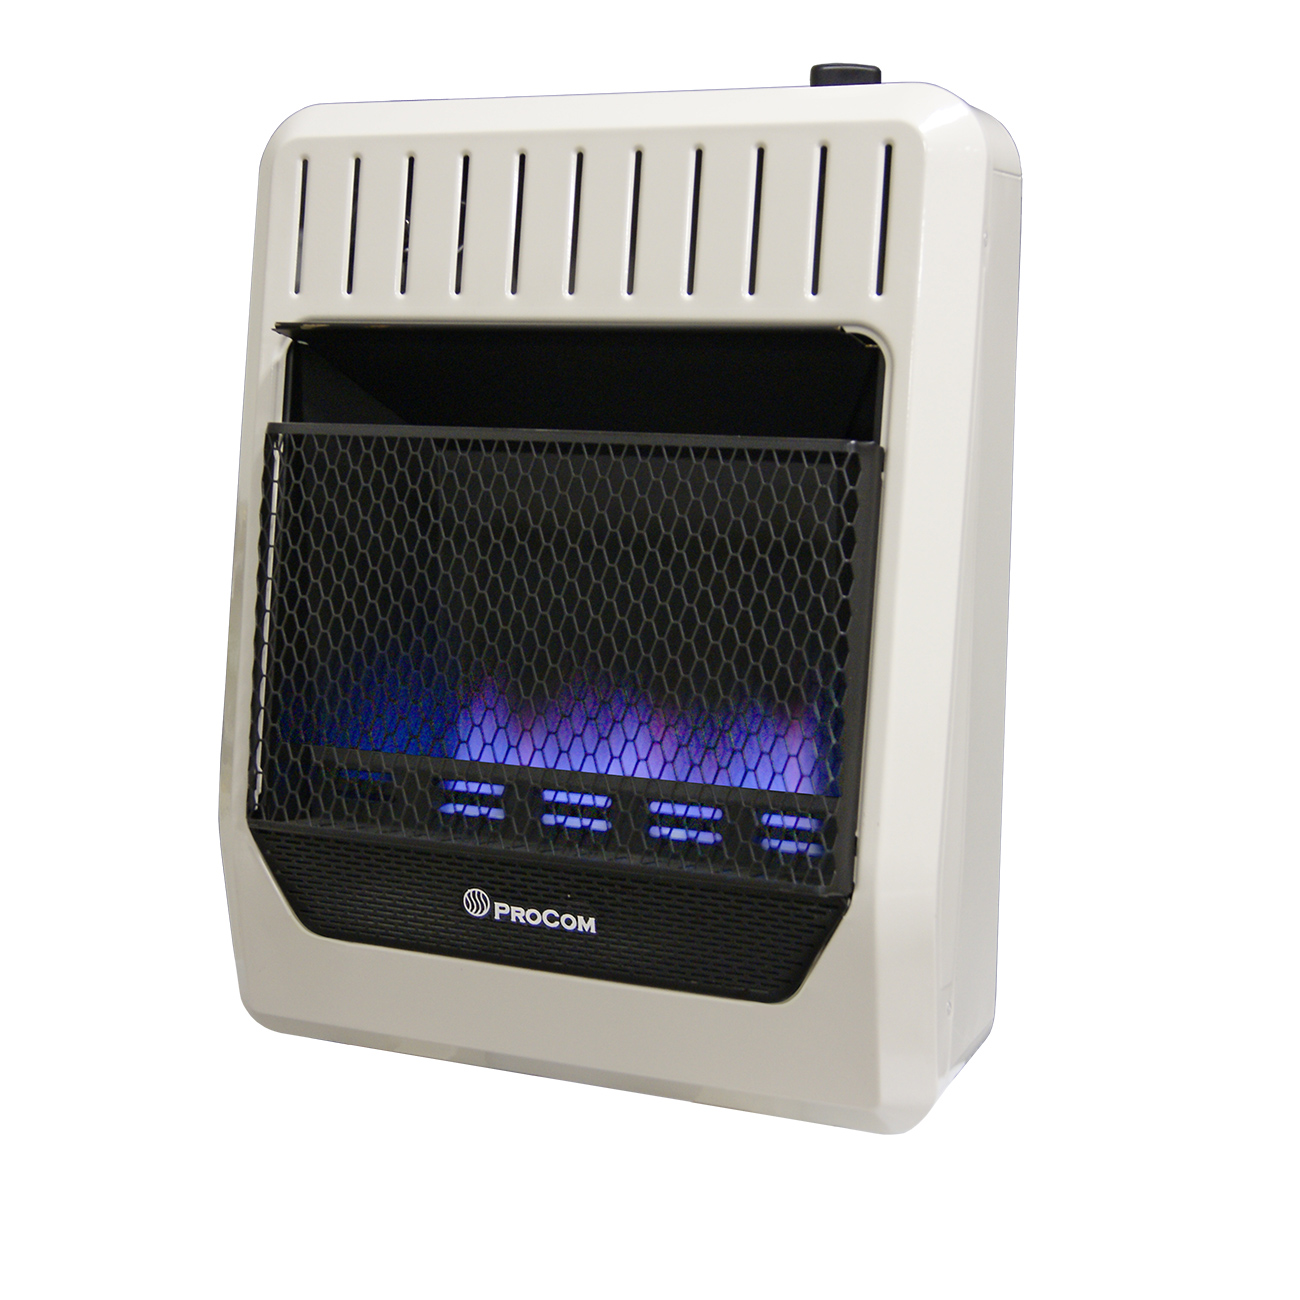 Ventless Propane Gas Blue Flame Wall Heater 20 000 Btu